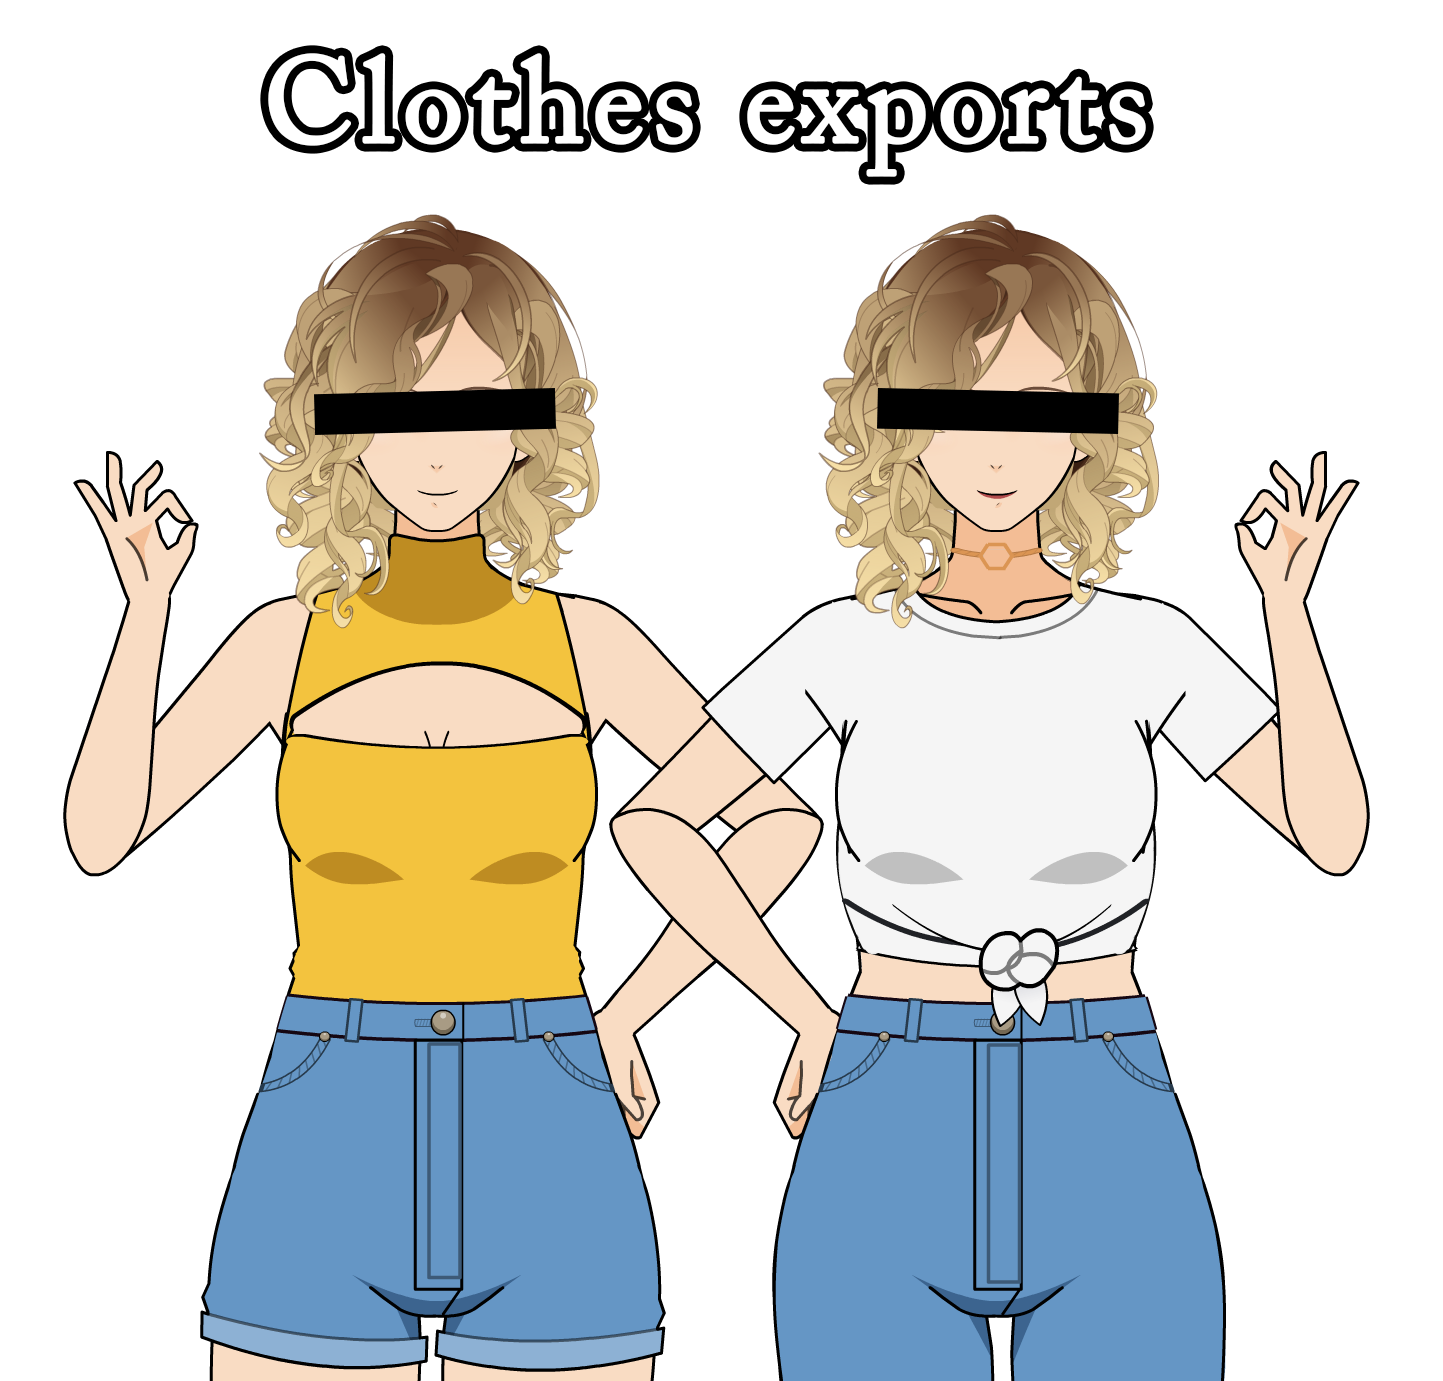 High waisted, keyhole, and tied shirt exports